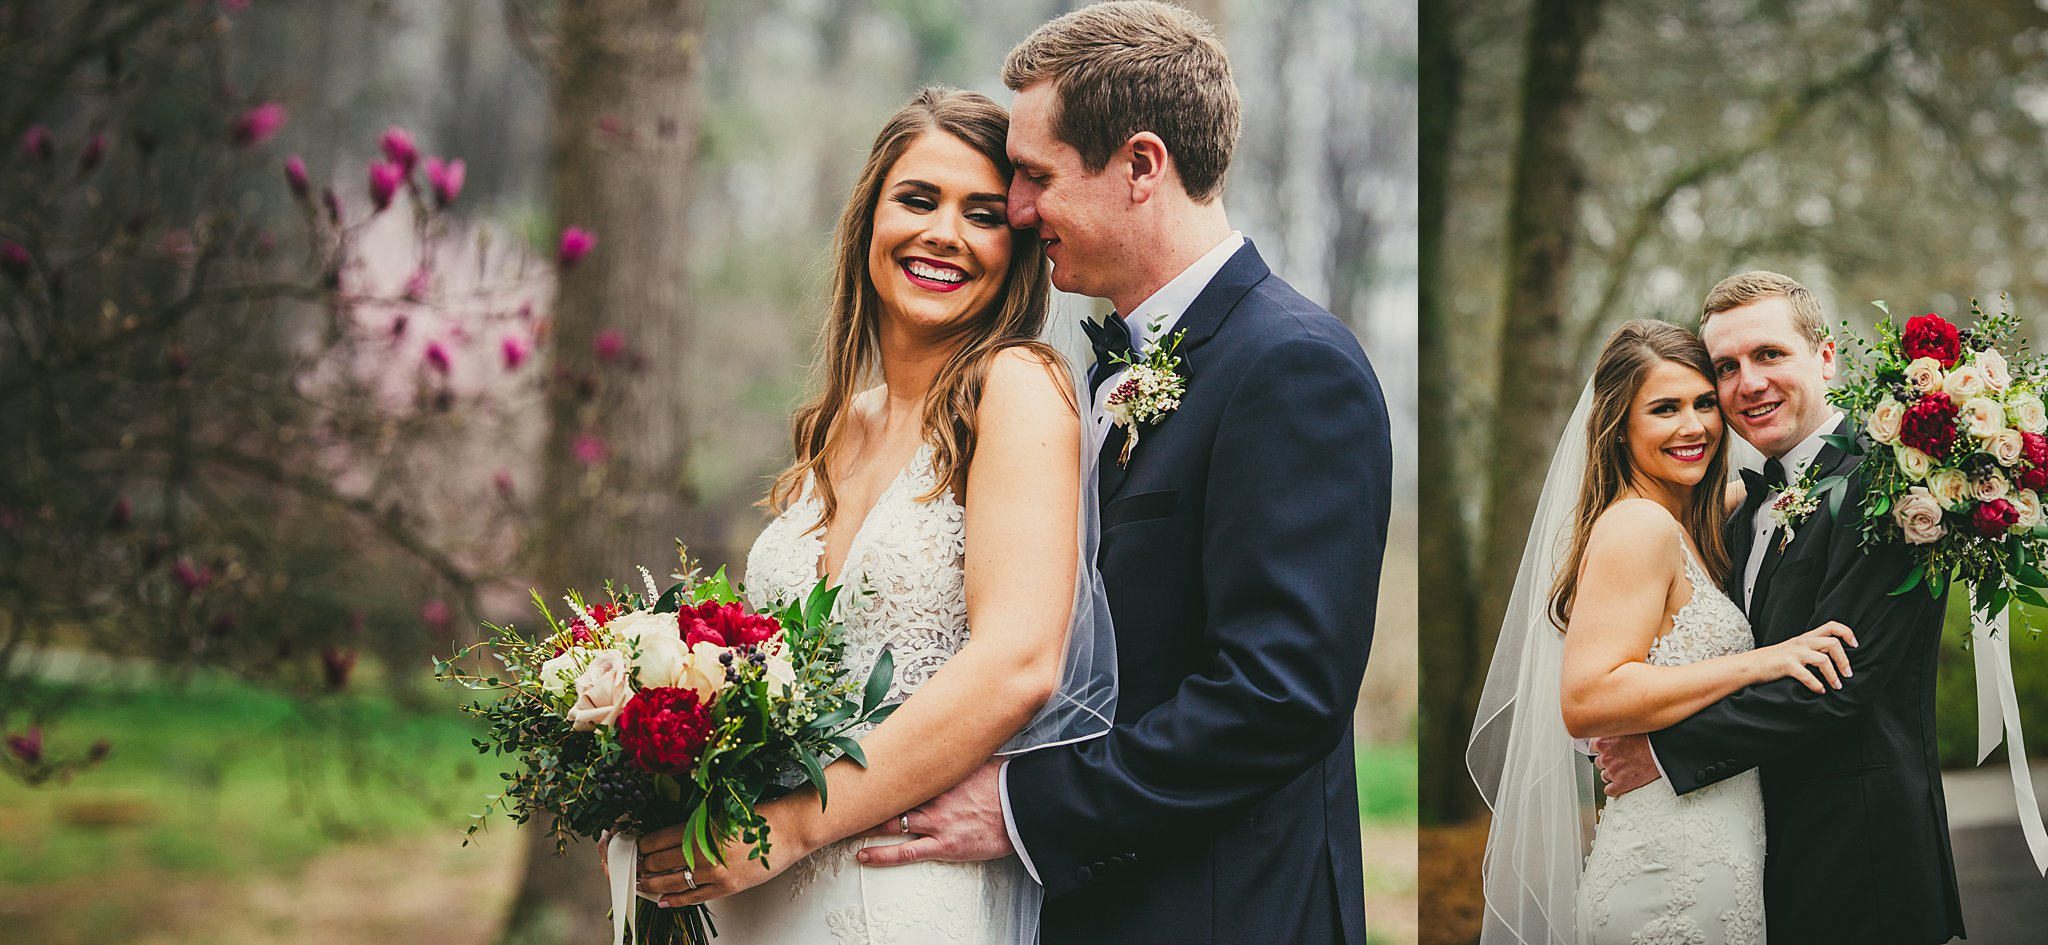 Atlanta Wedding Photographer Spring Wedding at Little River Farms